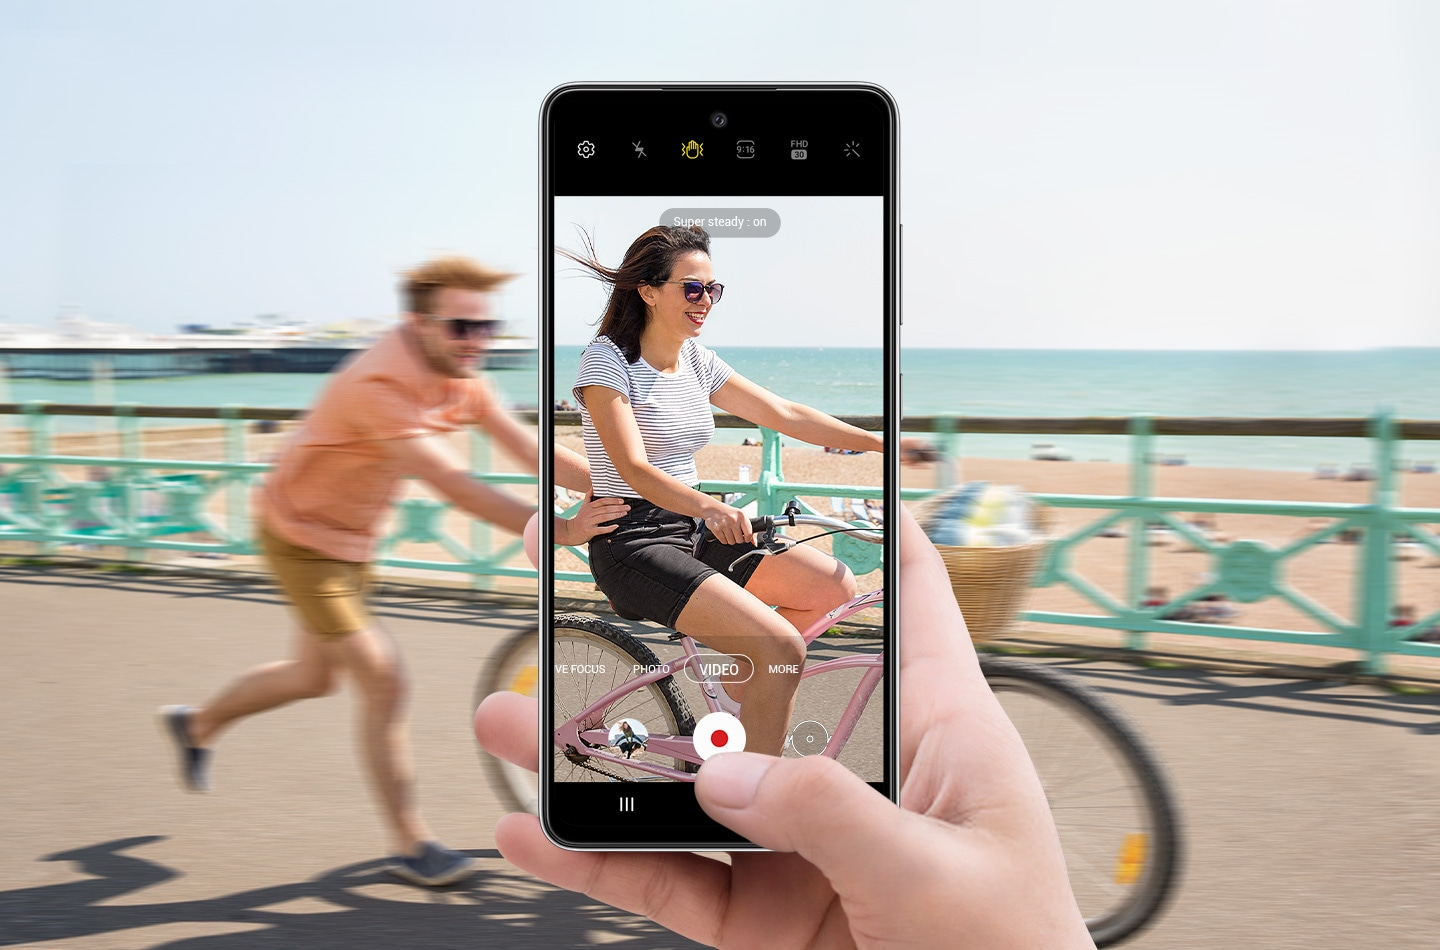 A person on a bike with another person running behind them and pushing. In front of this is a hand holding Galaxy A52 with the camera interface onscreen. The scene in the display is clearer than the scene outside of the display, depicting how Super Steady allows video to be captured smoothly even if the subject is in motion.